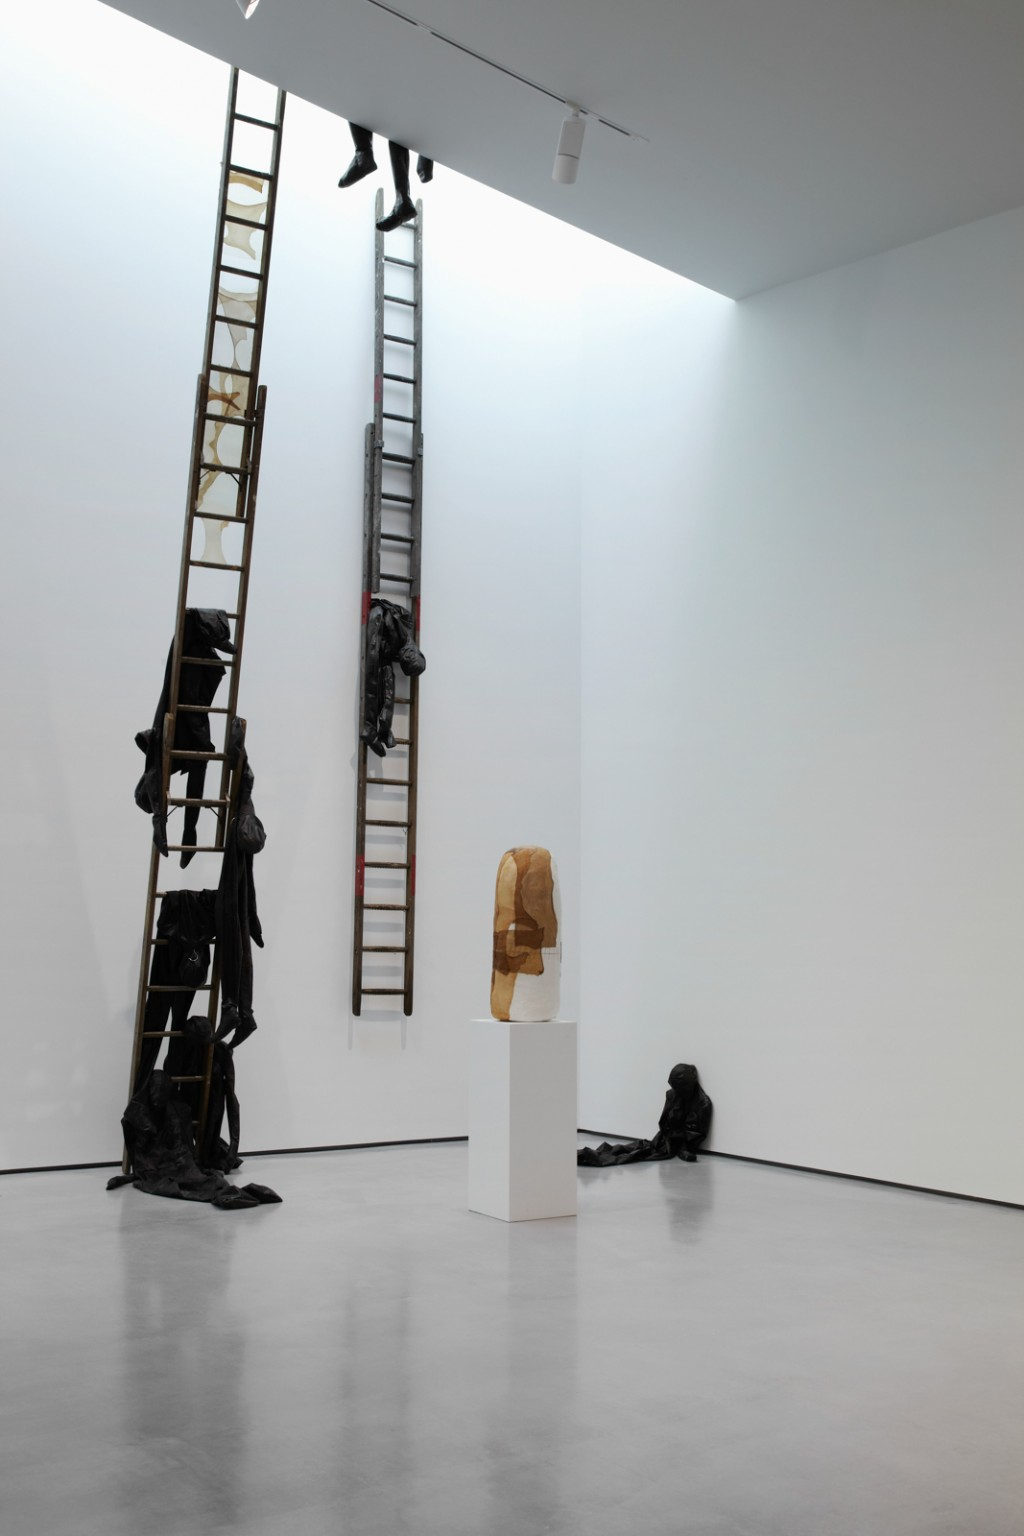 ALEXANDRA BIRCKEN 'ESKALATION', The Hepworth Wakefield, UK, 2014